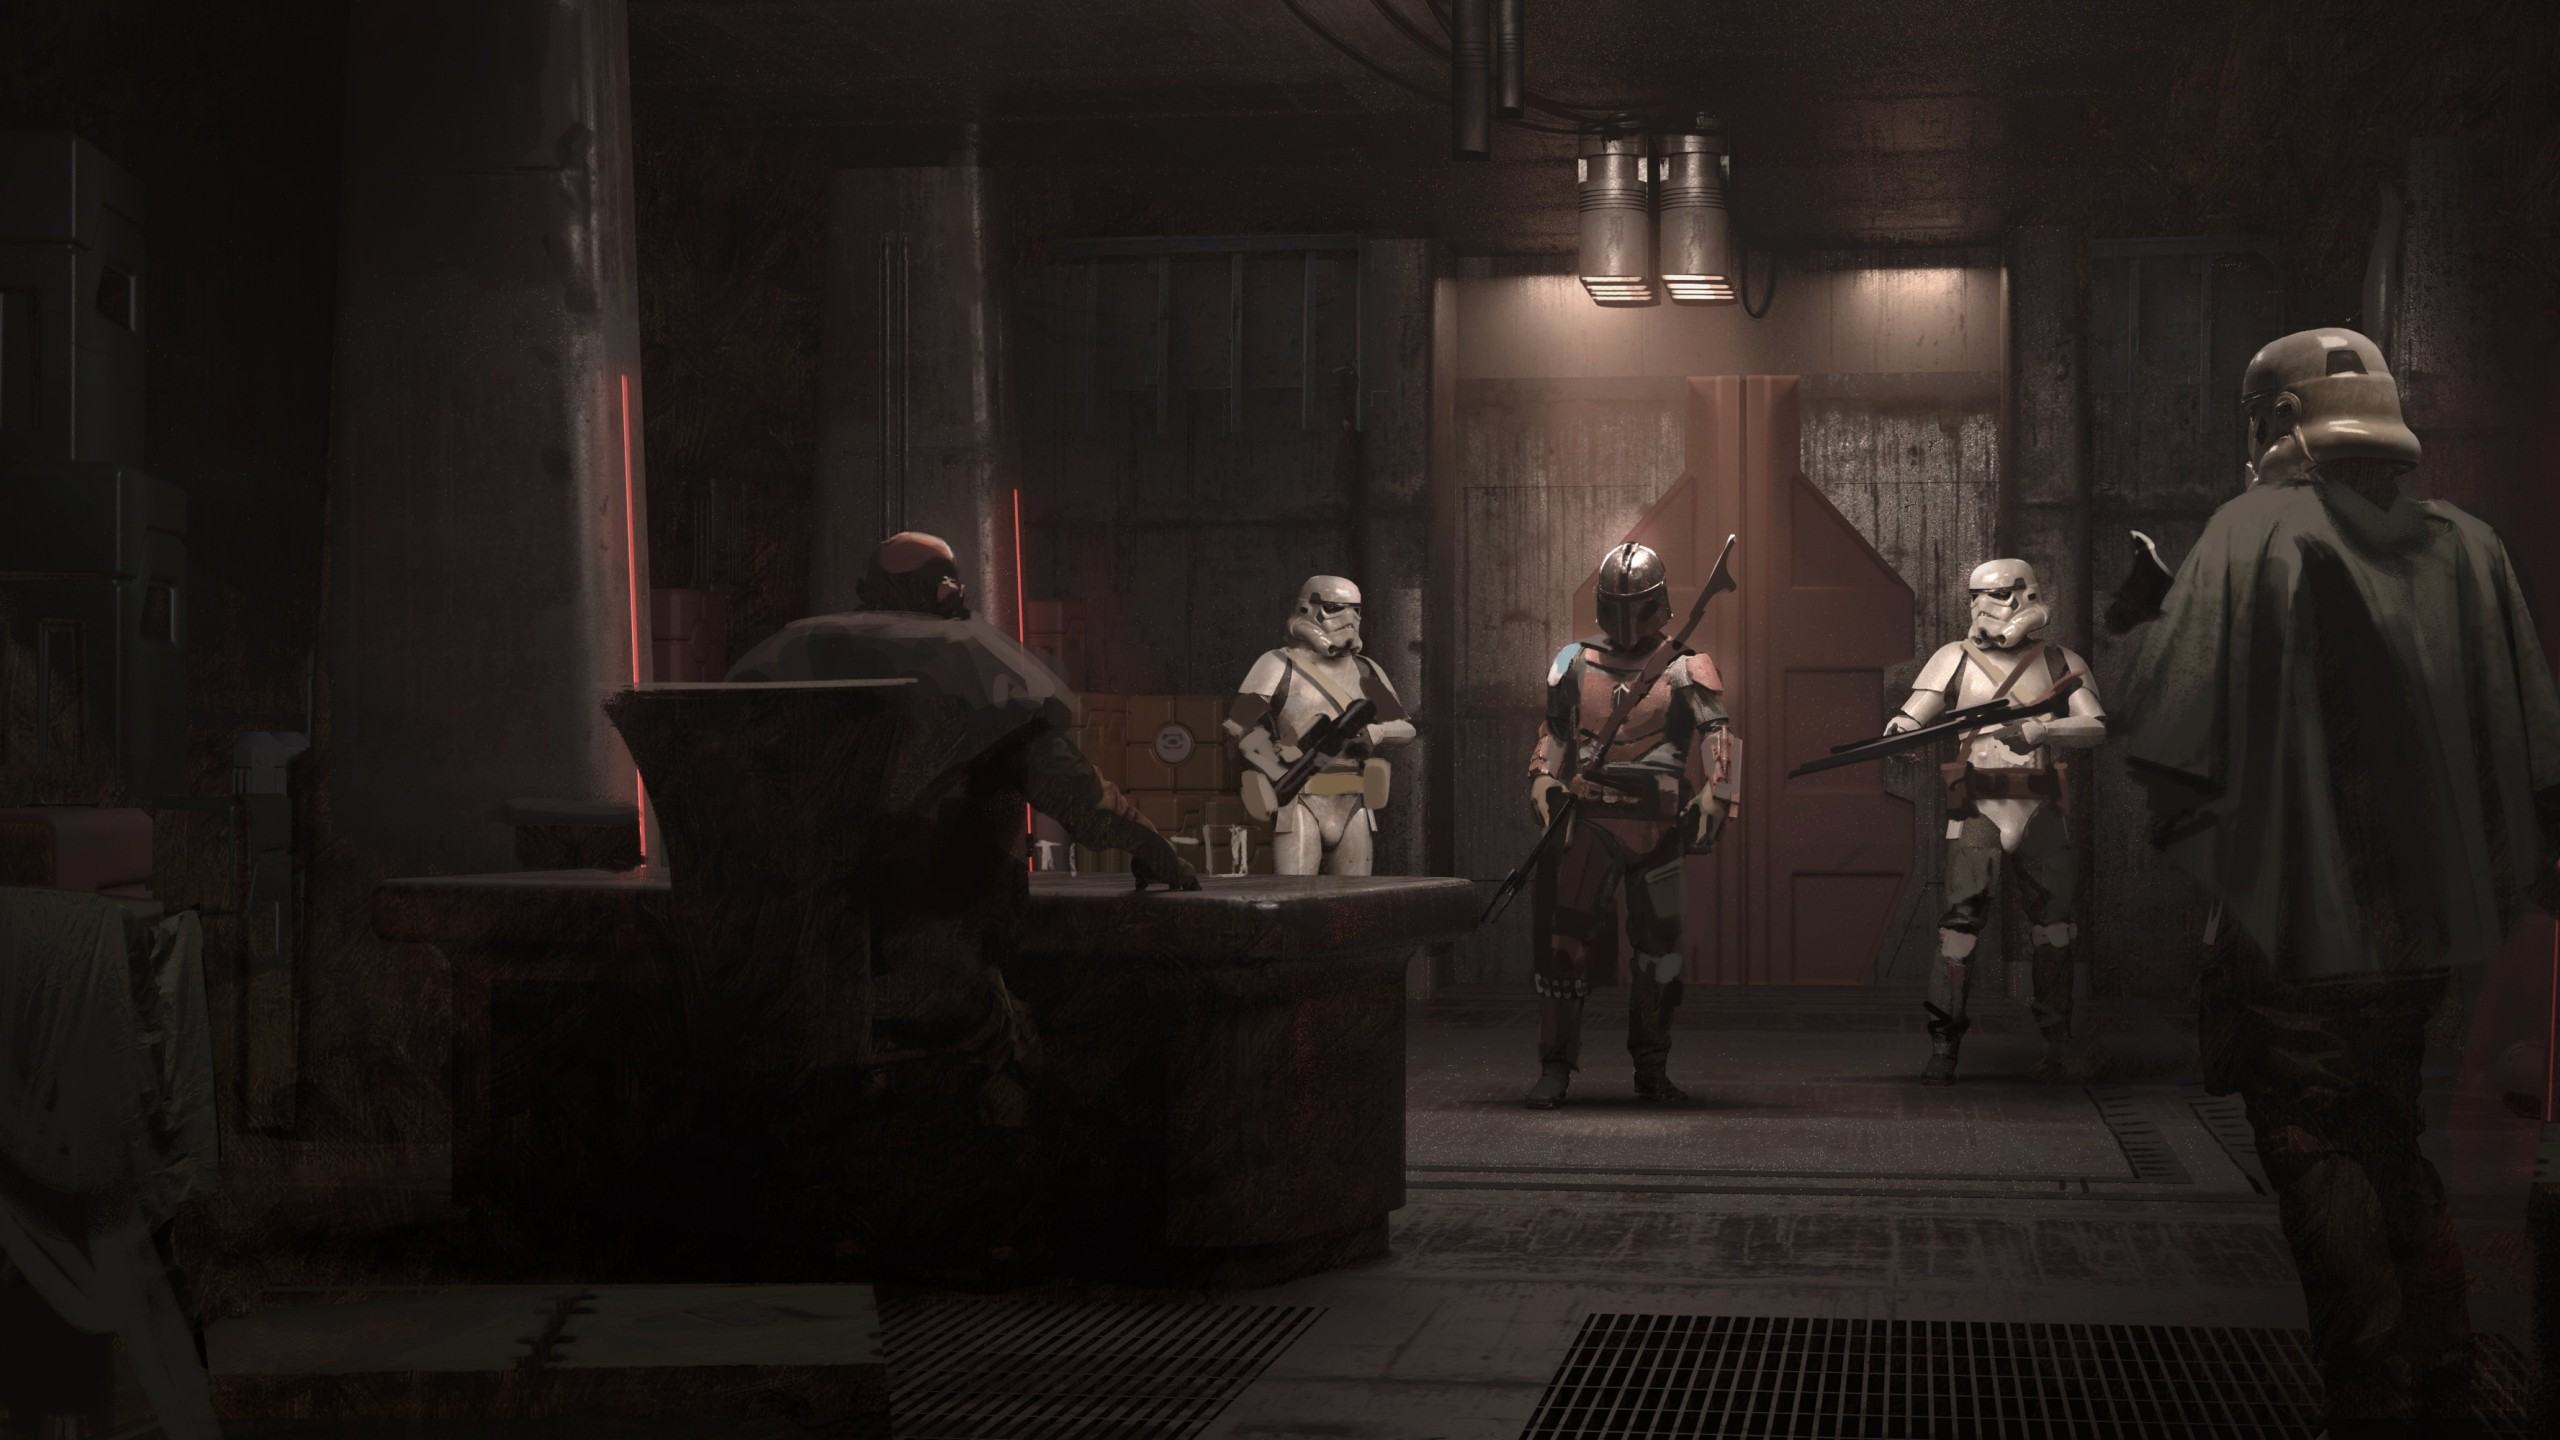 The Mandalorian 2560x1440 Wallpaper The Hot Desktop Wallpapers And Backgrounds For Your Pc And Mobile